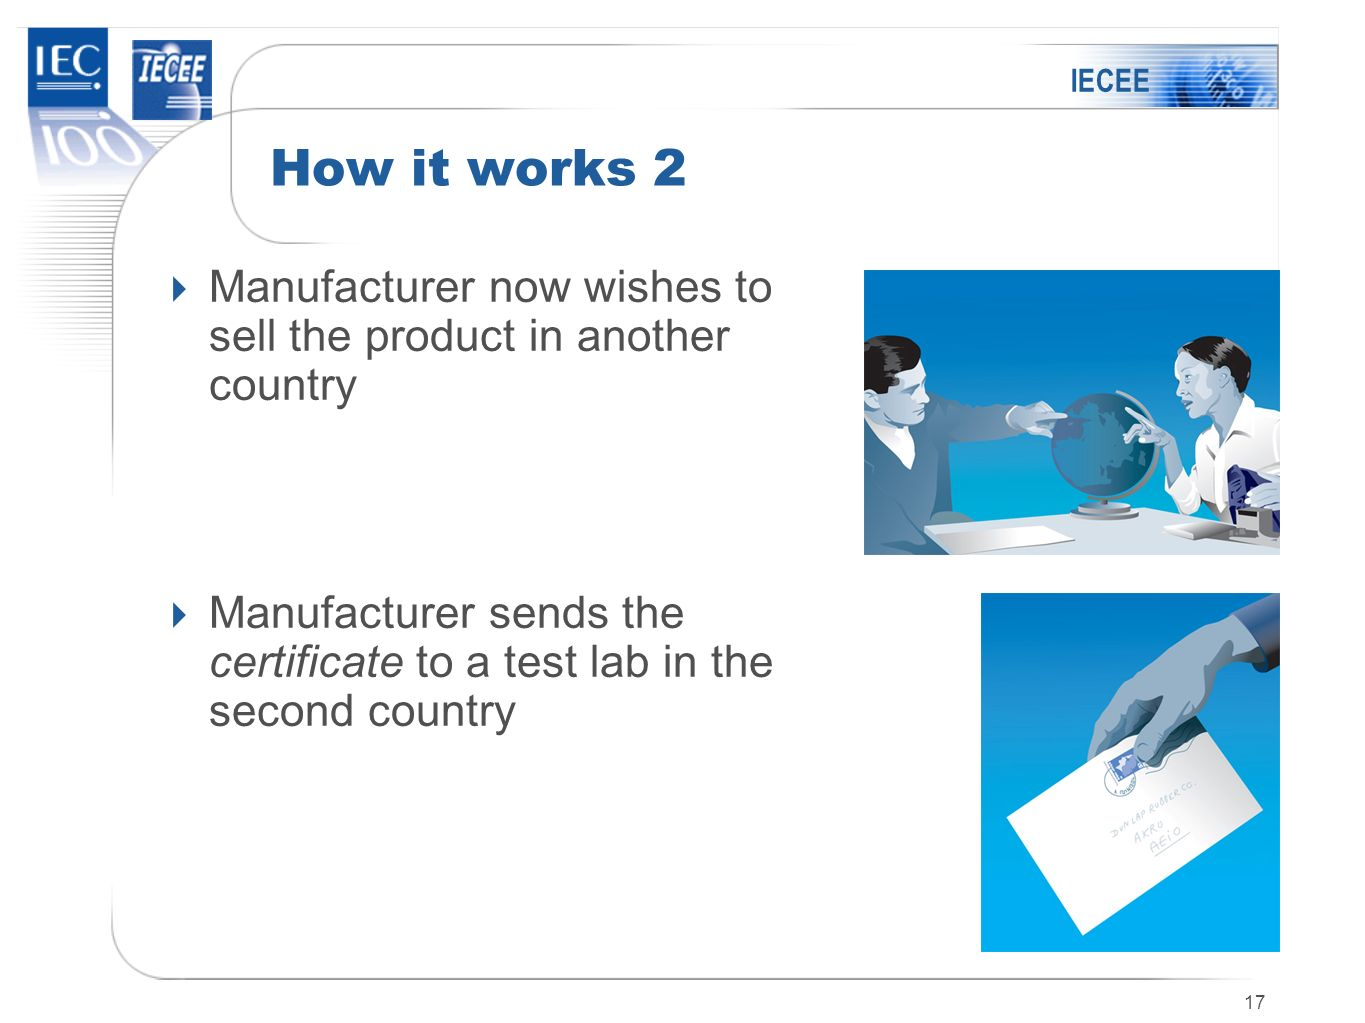 IECEE How it works 2. Manufacturer now wishes to sell the product in another country.